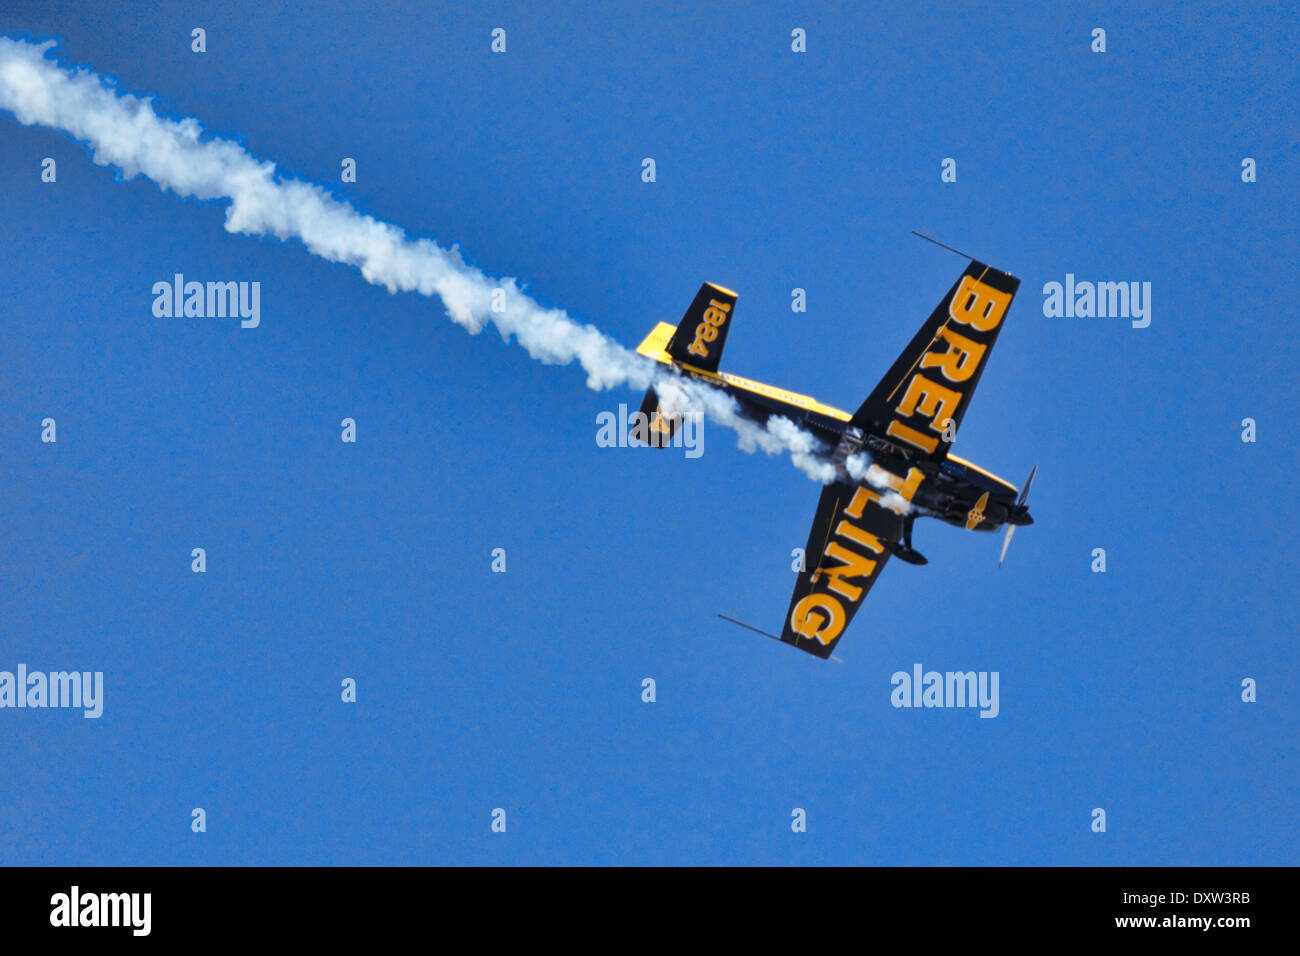 Aerobatic Airplane performance during Air Show in Athens, Greece - Stock Image